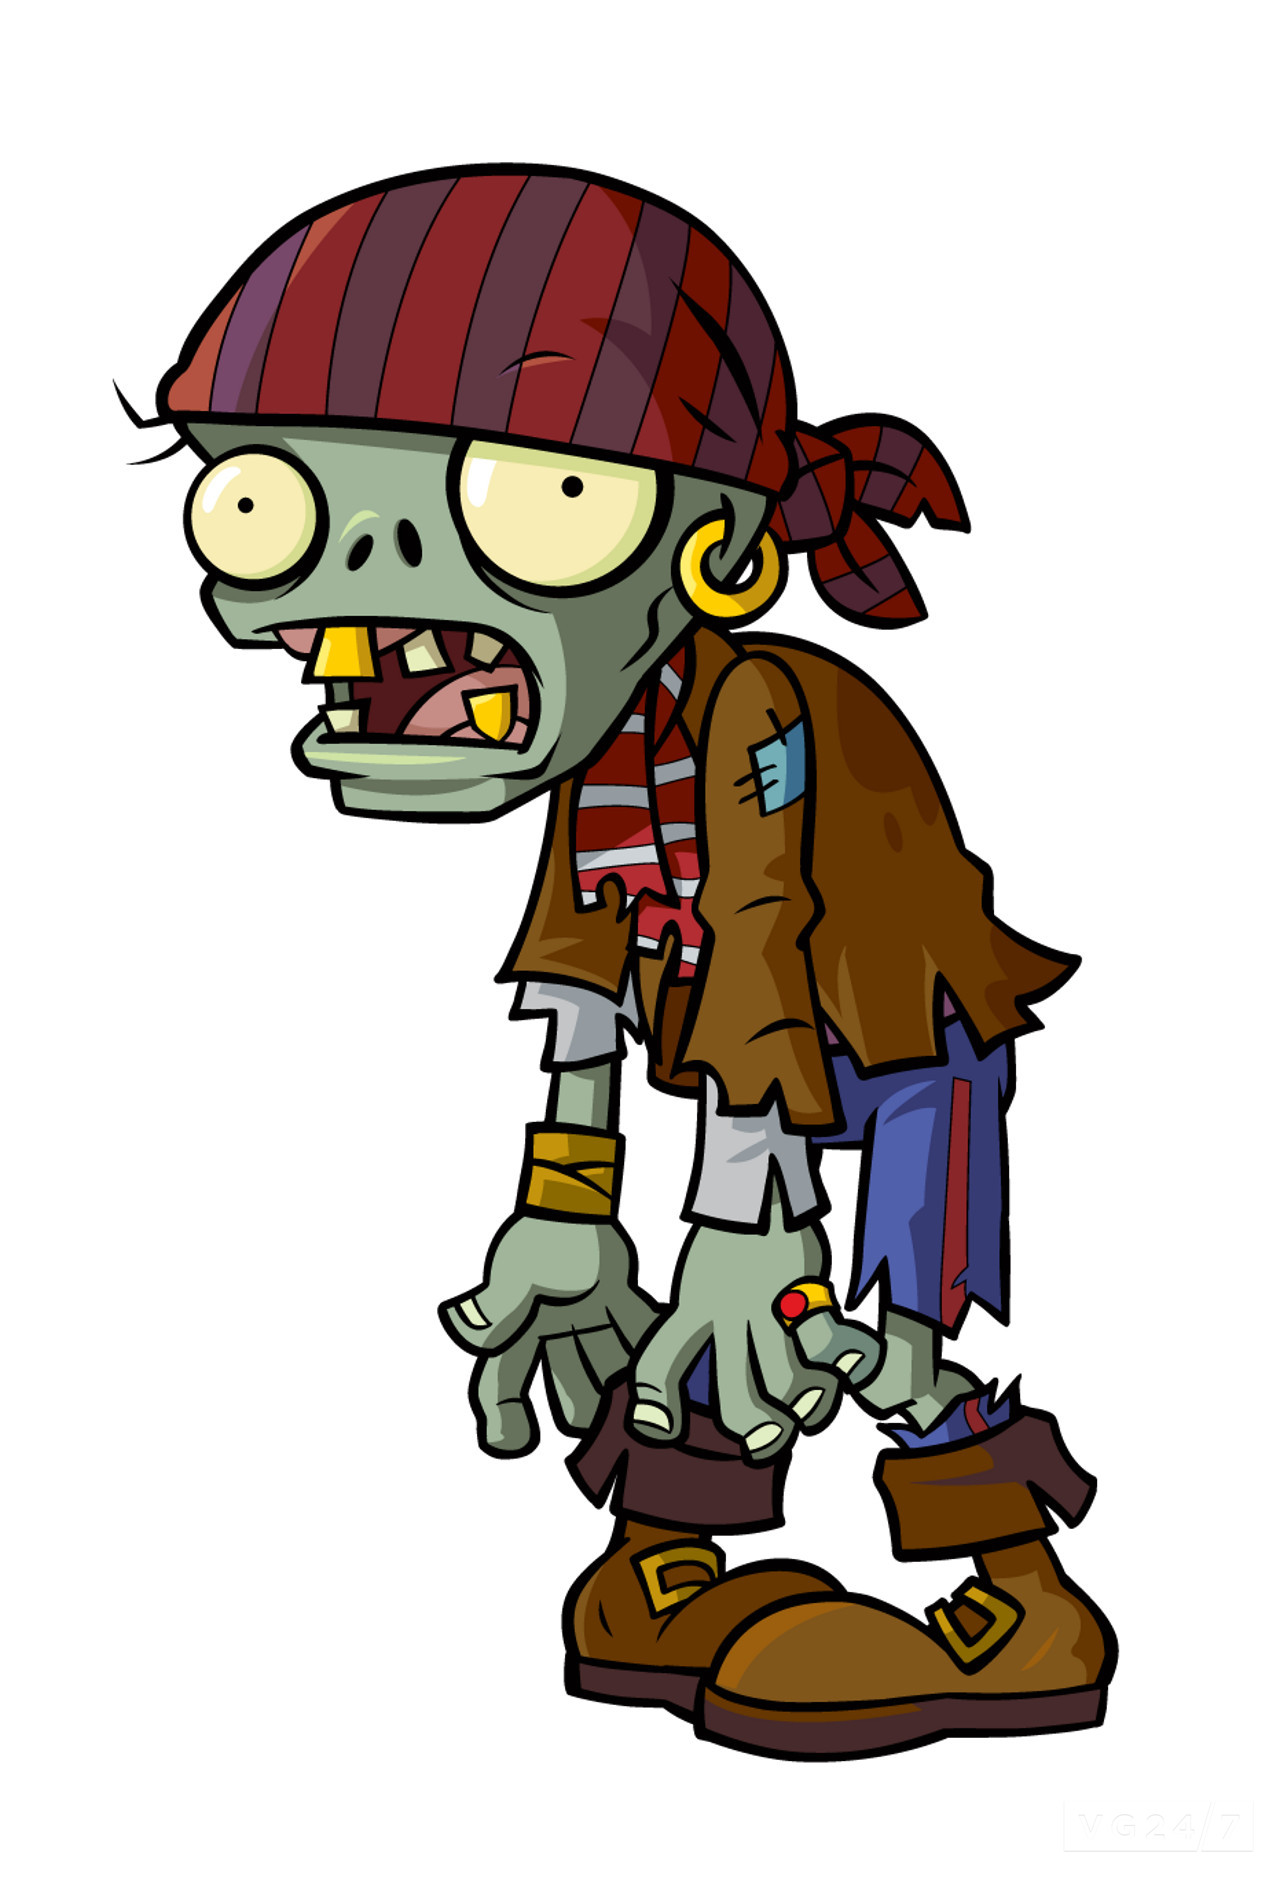 in plants vs zombies